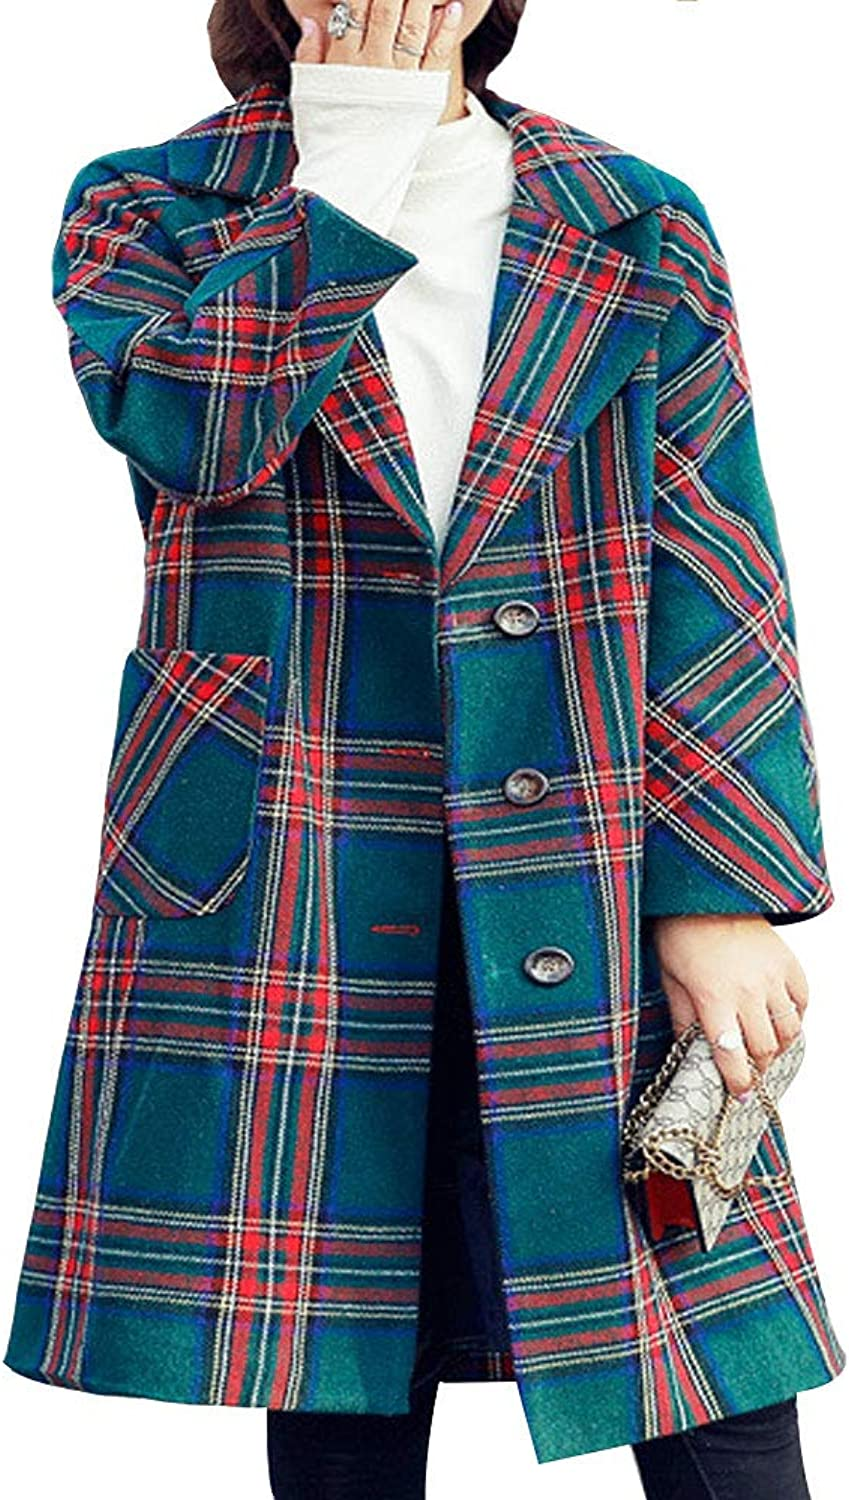 EVEDESIGN Women's Fashion Plaid Woolen Pea Coat Double Breasted Check Long Loose Overcoat